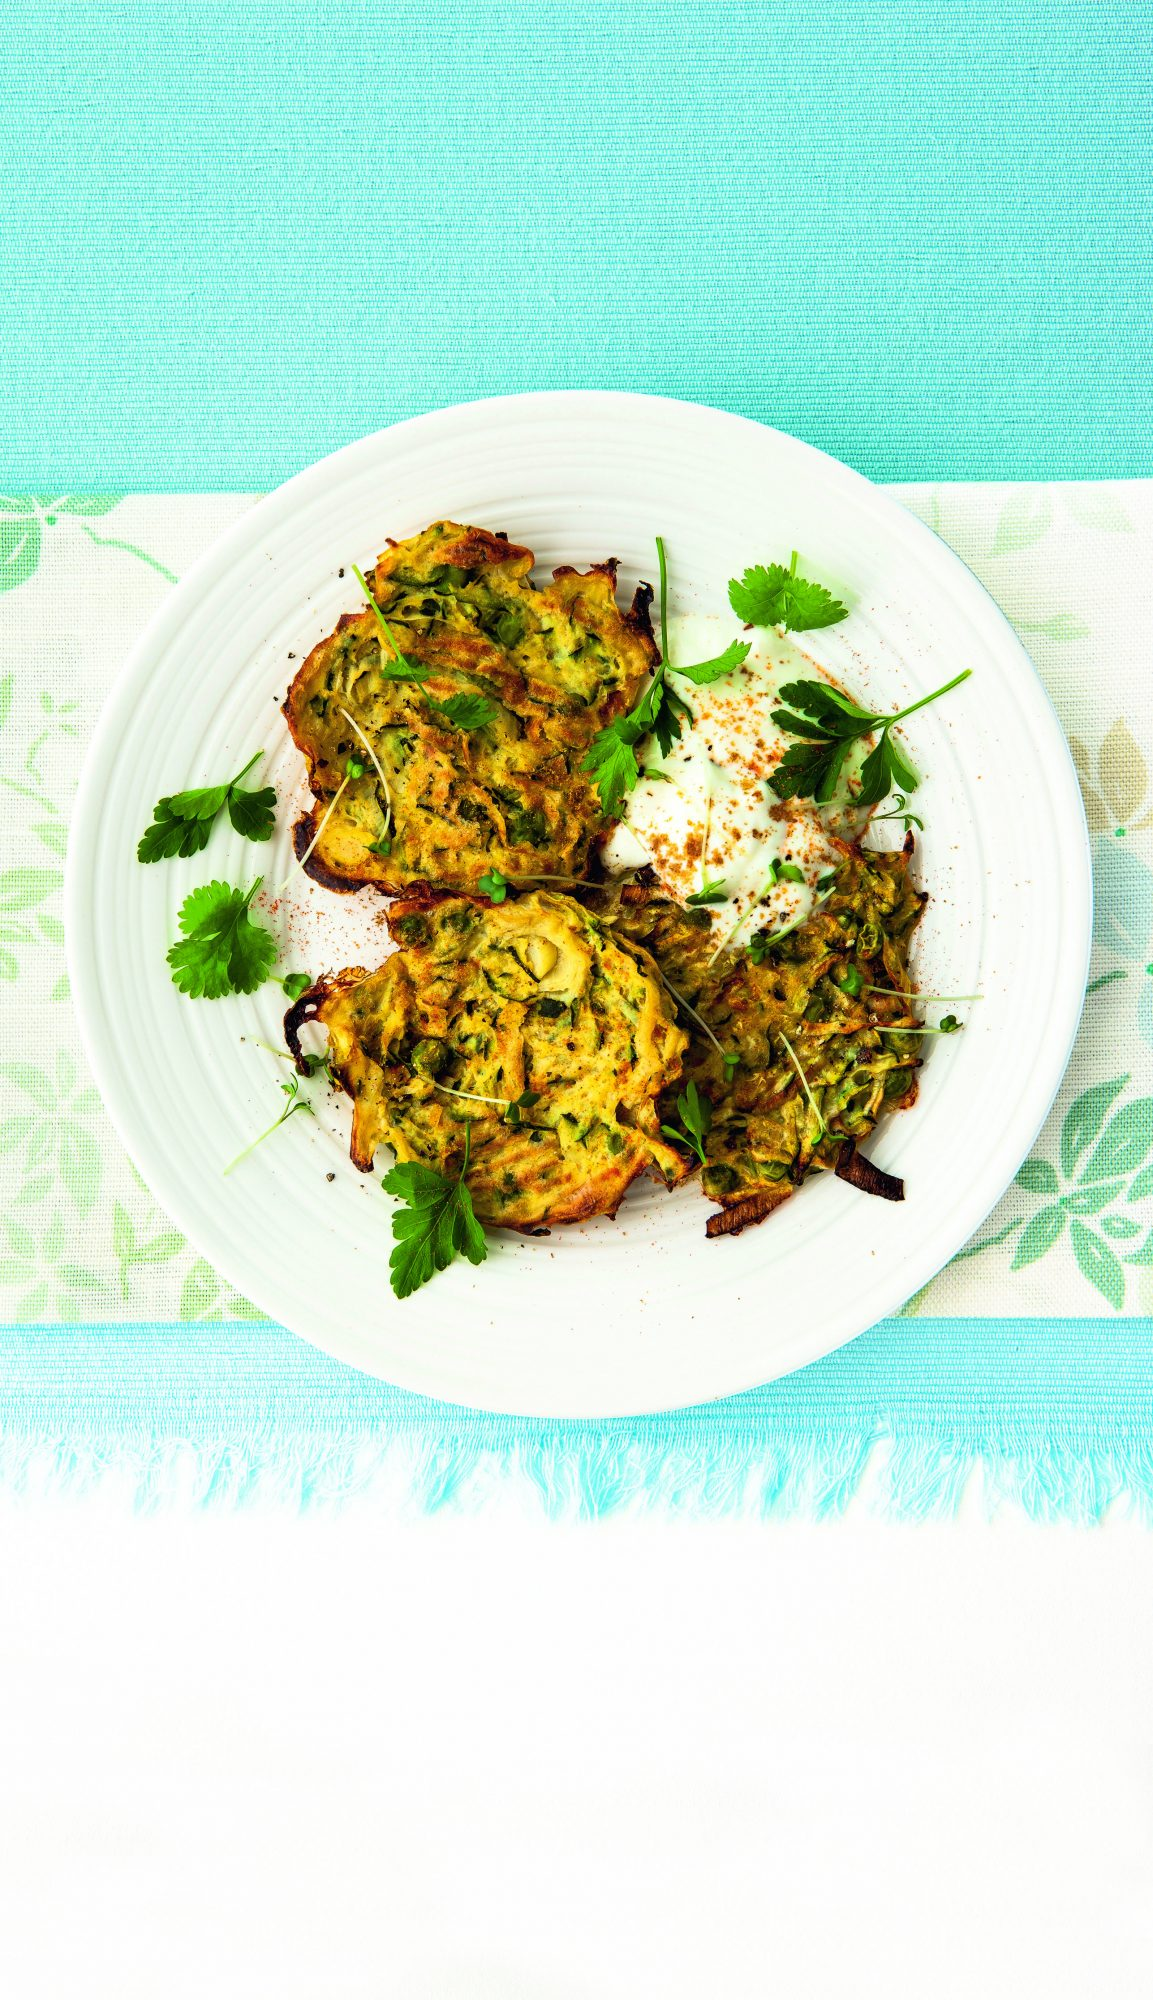 Spiced Zucchini, Leek and Pea Fritters